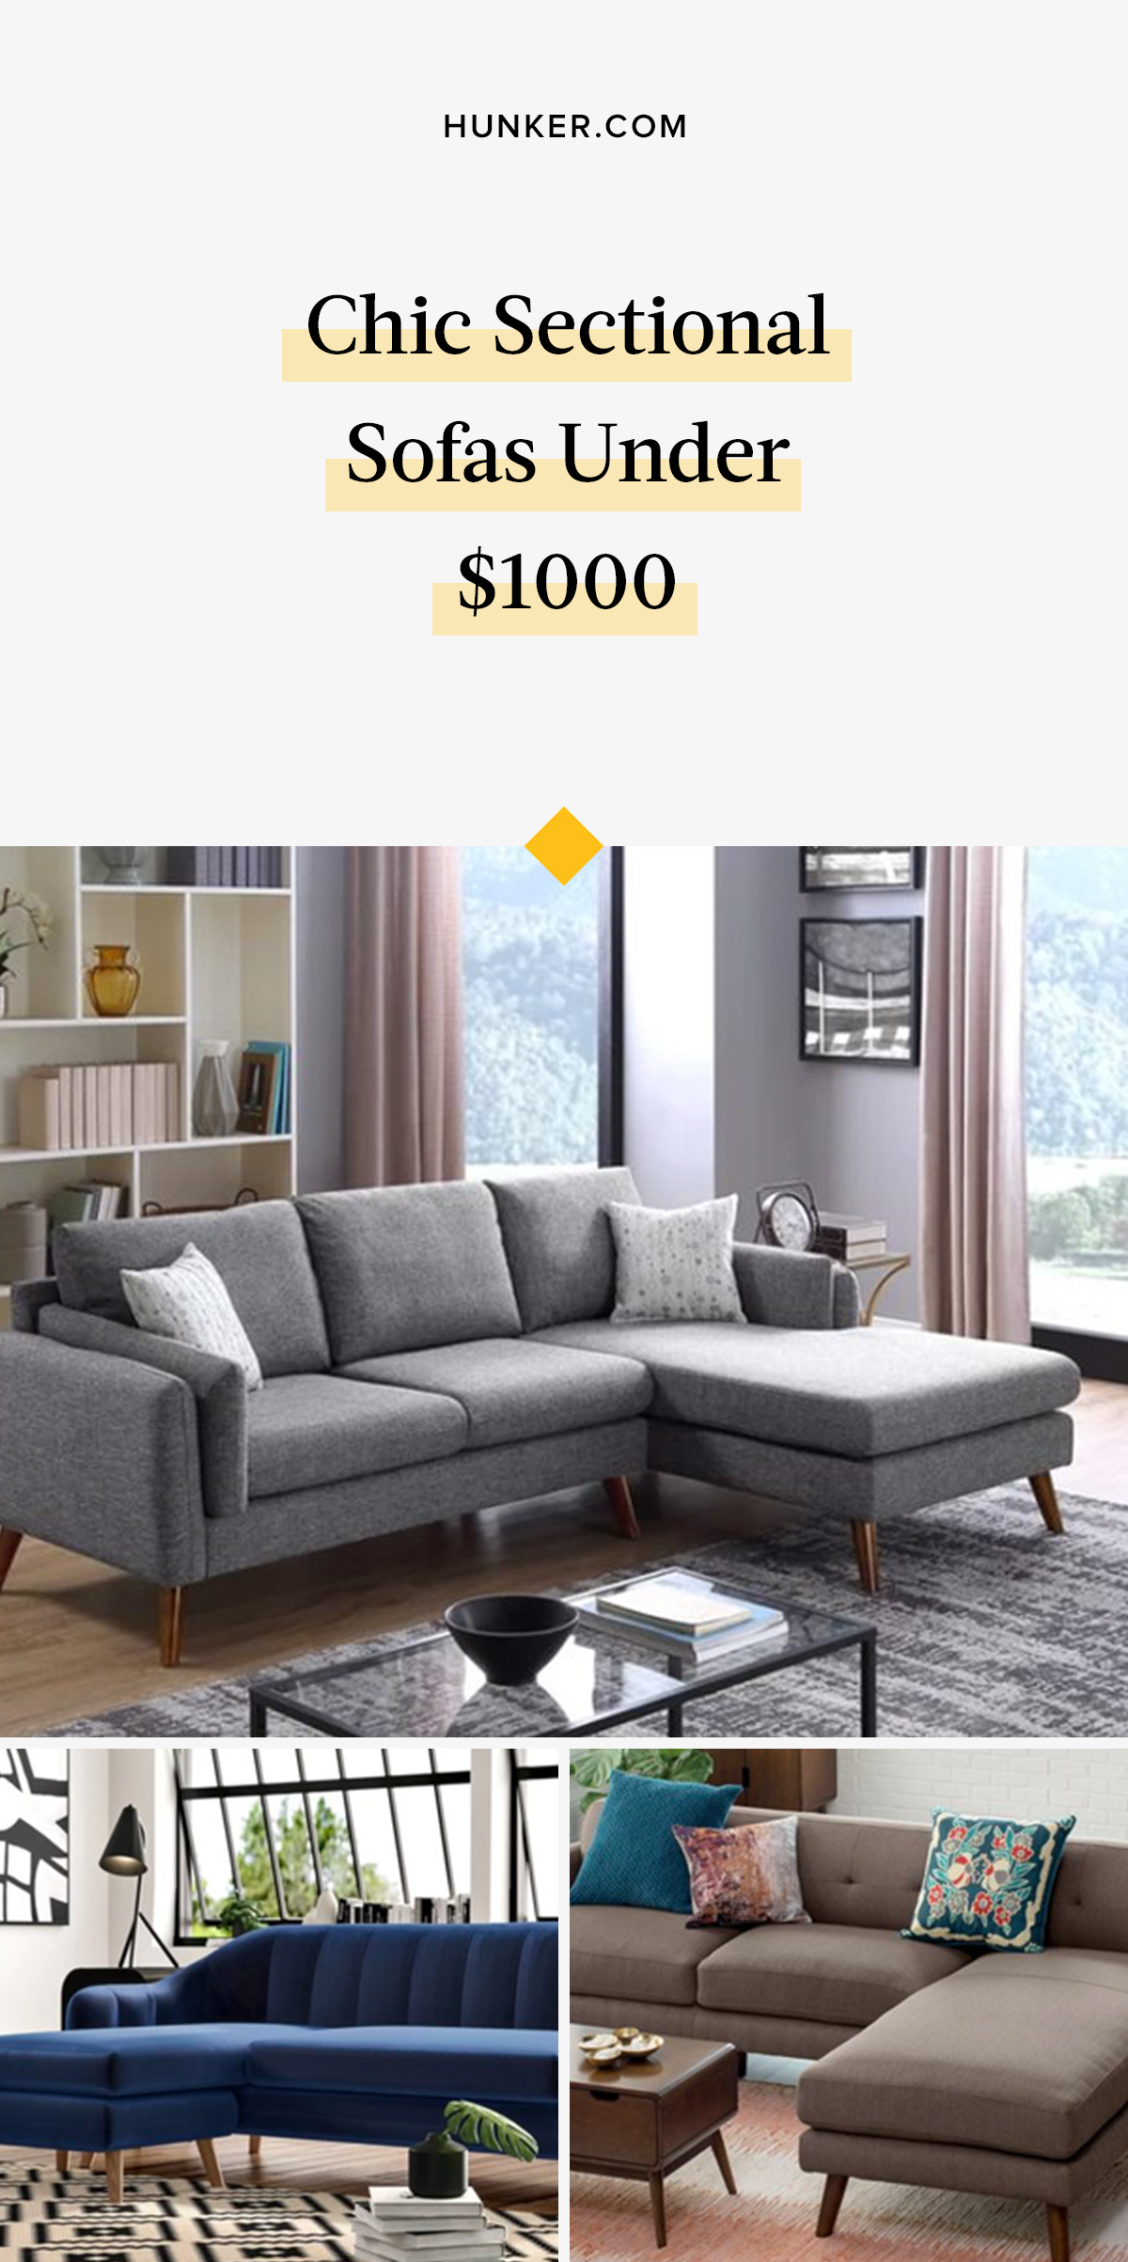 32 Comfortable Yet Chic Sectional Sofas Under $32,32   Hunker ...